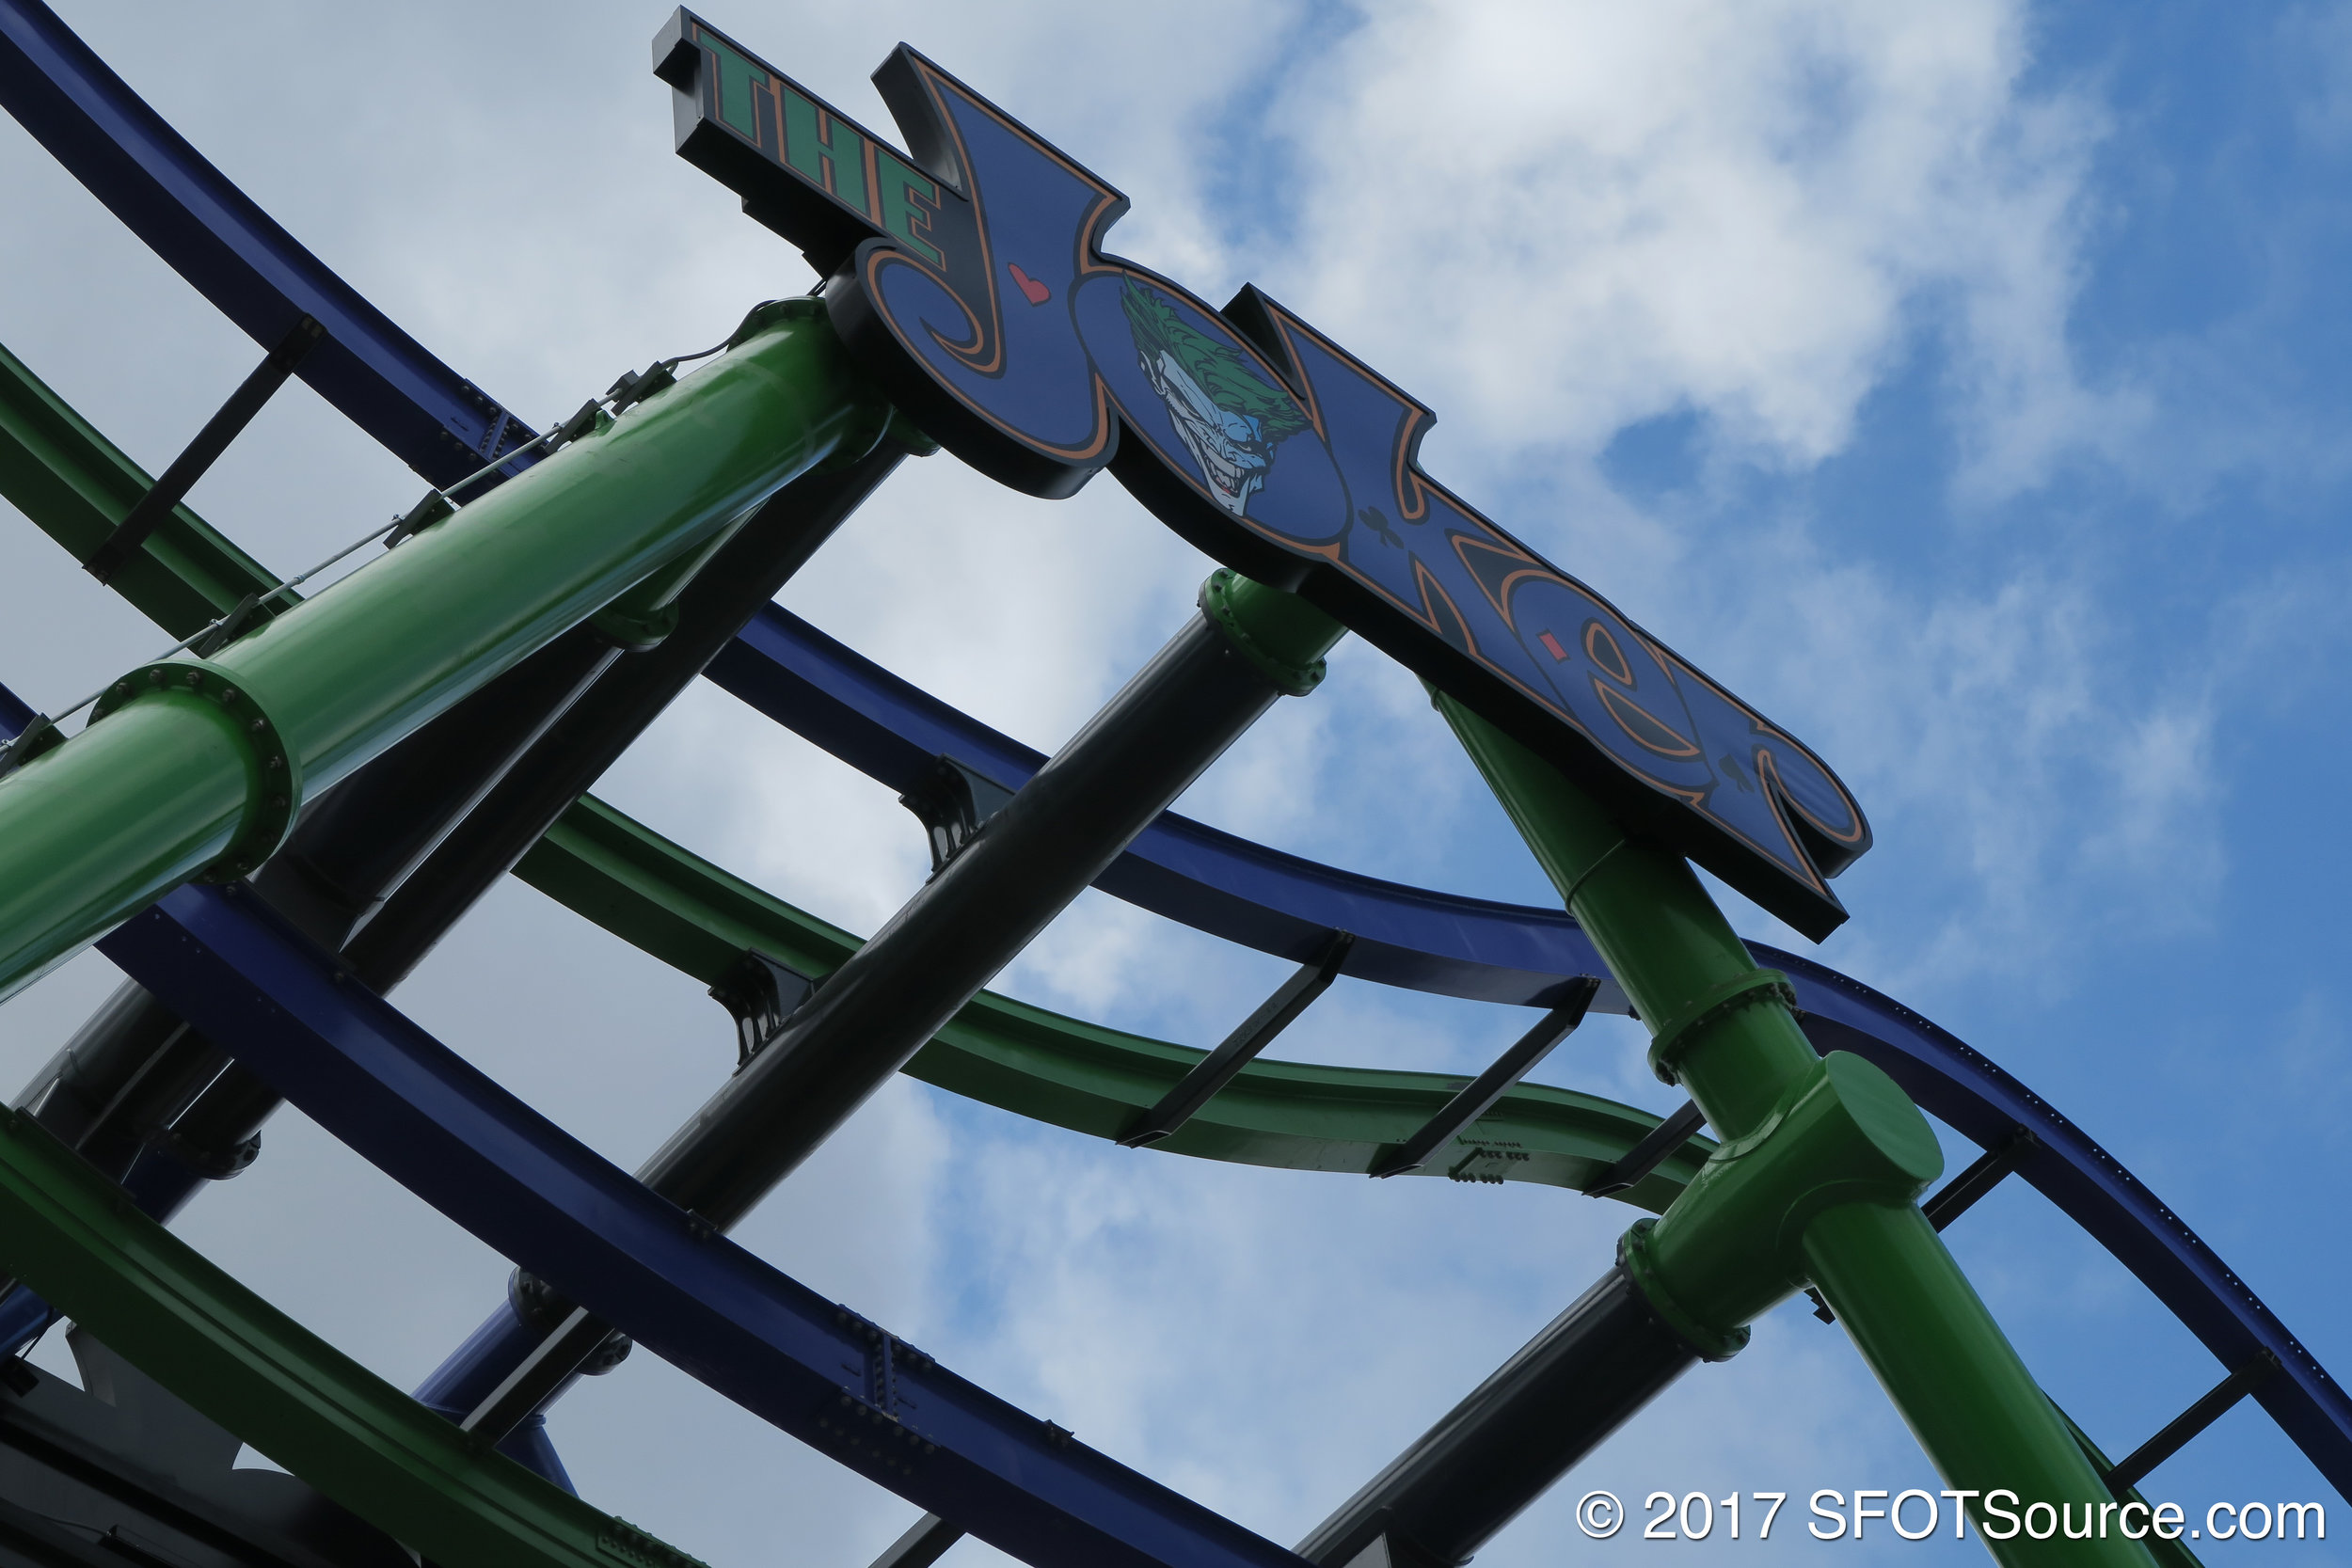 The Joker logo sitting atop the ride structure.